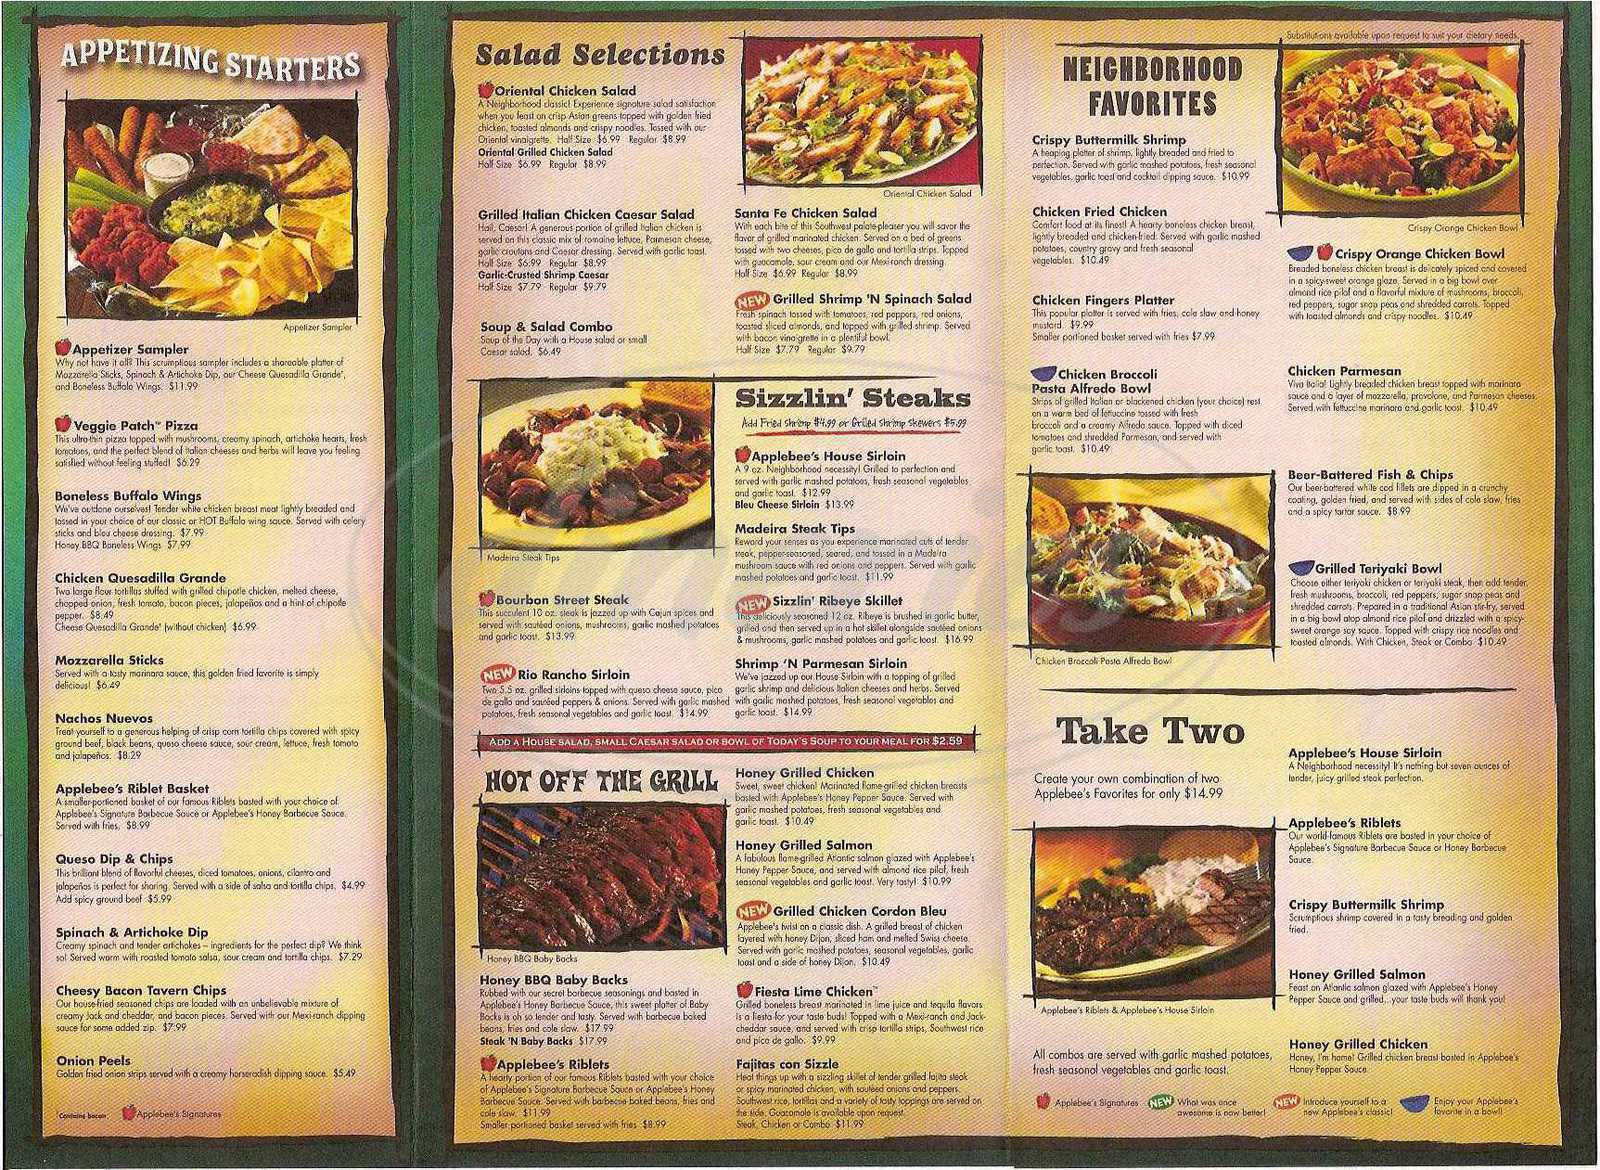 image regarding Printable Applebees Menu called Applebees Lunch Menu Printable - 12 months of Fresh new Drinking water